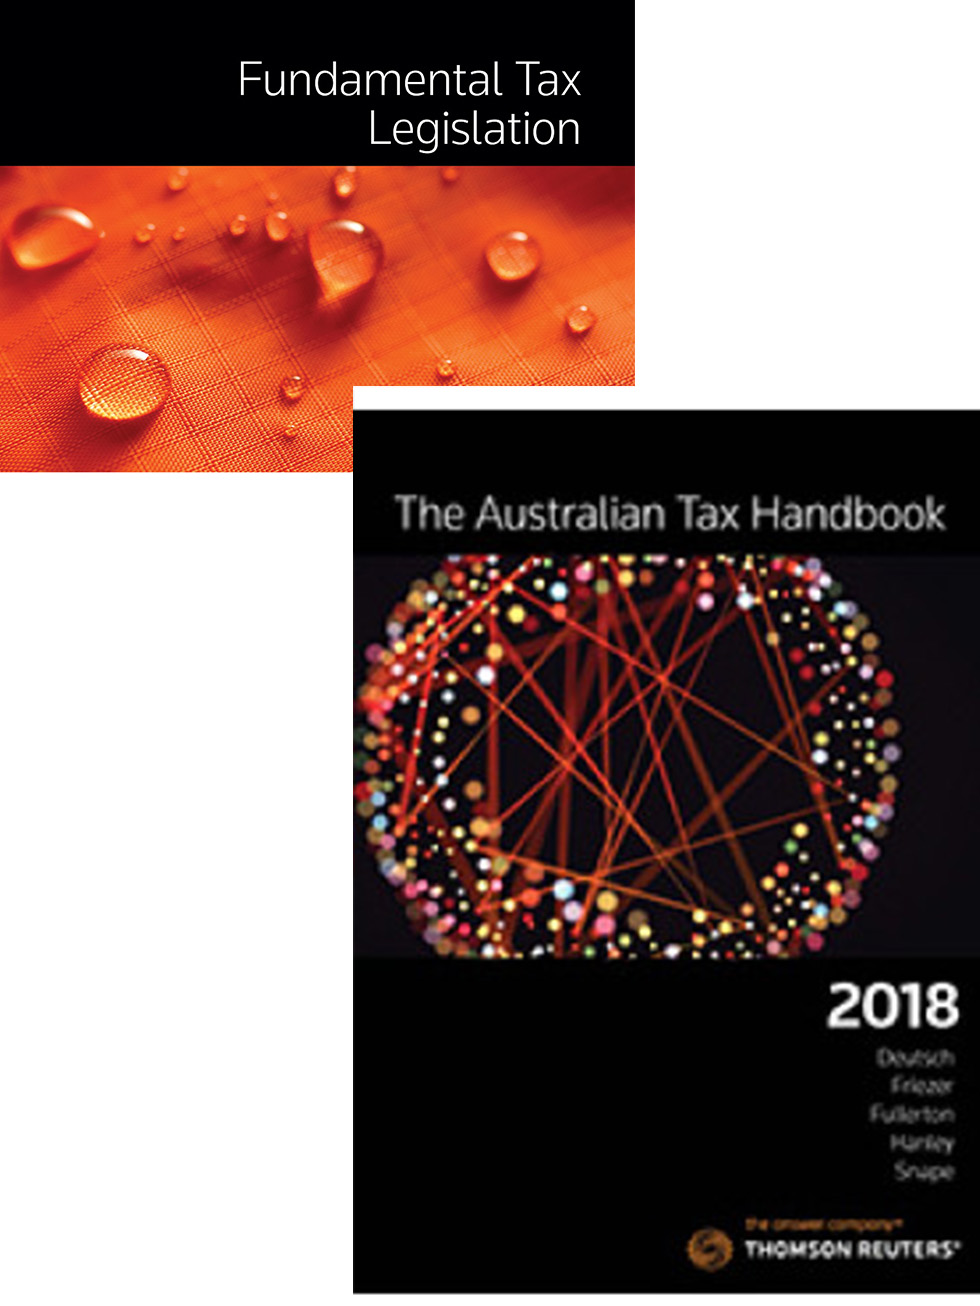 Tax Kit 1 2018 (Fundamental Tax Legislation 2018/ Australian Tax Handbook 2018)